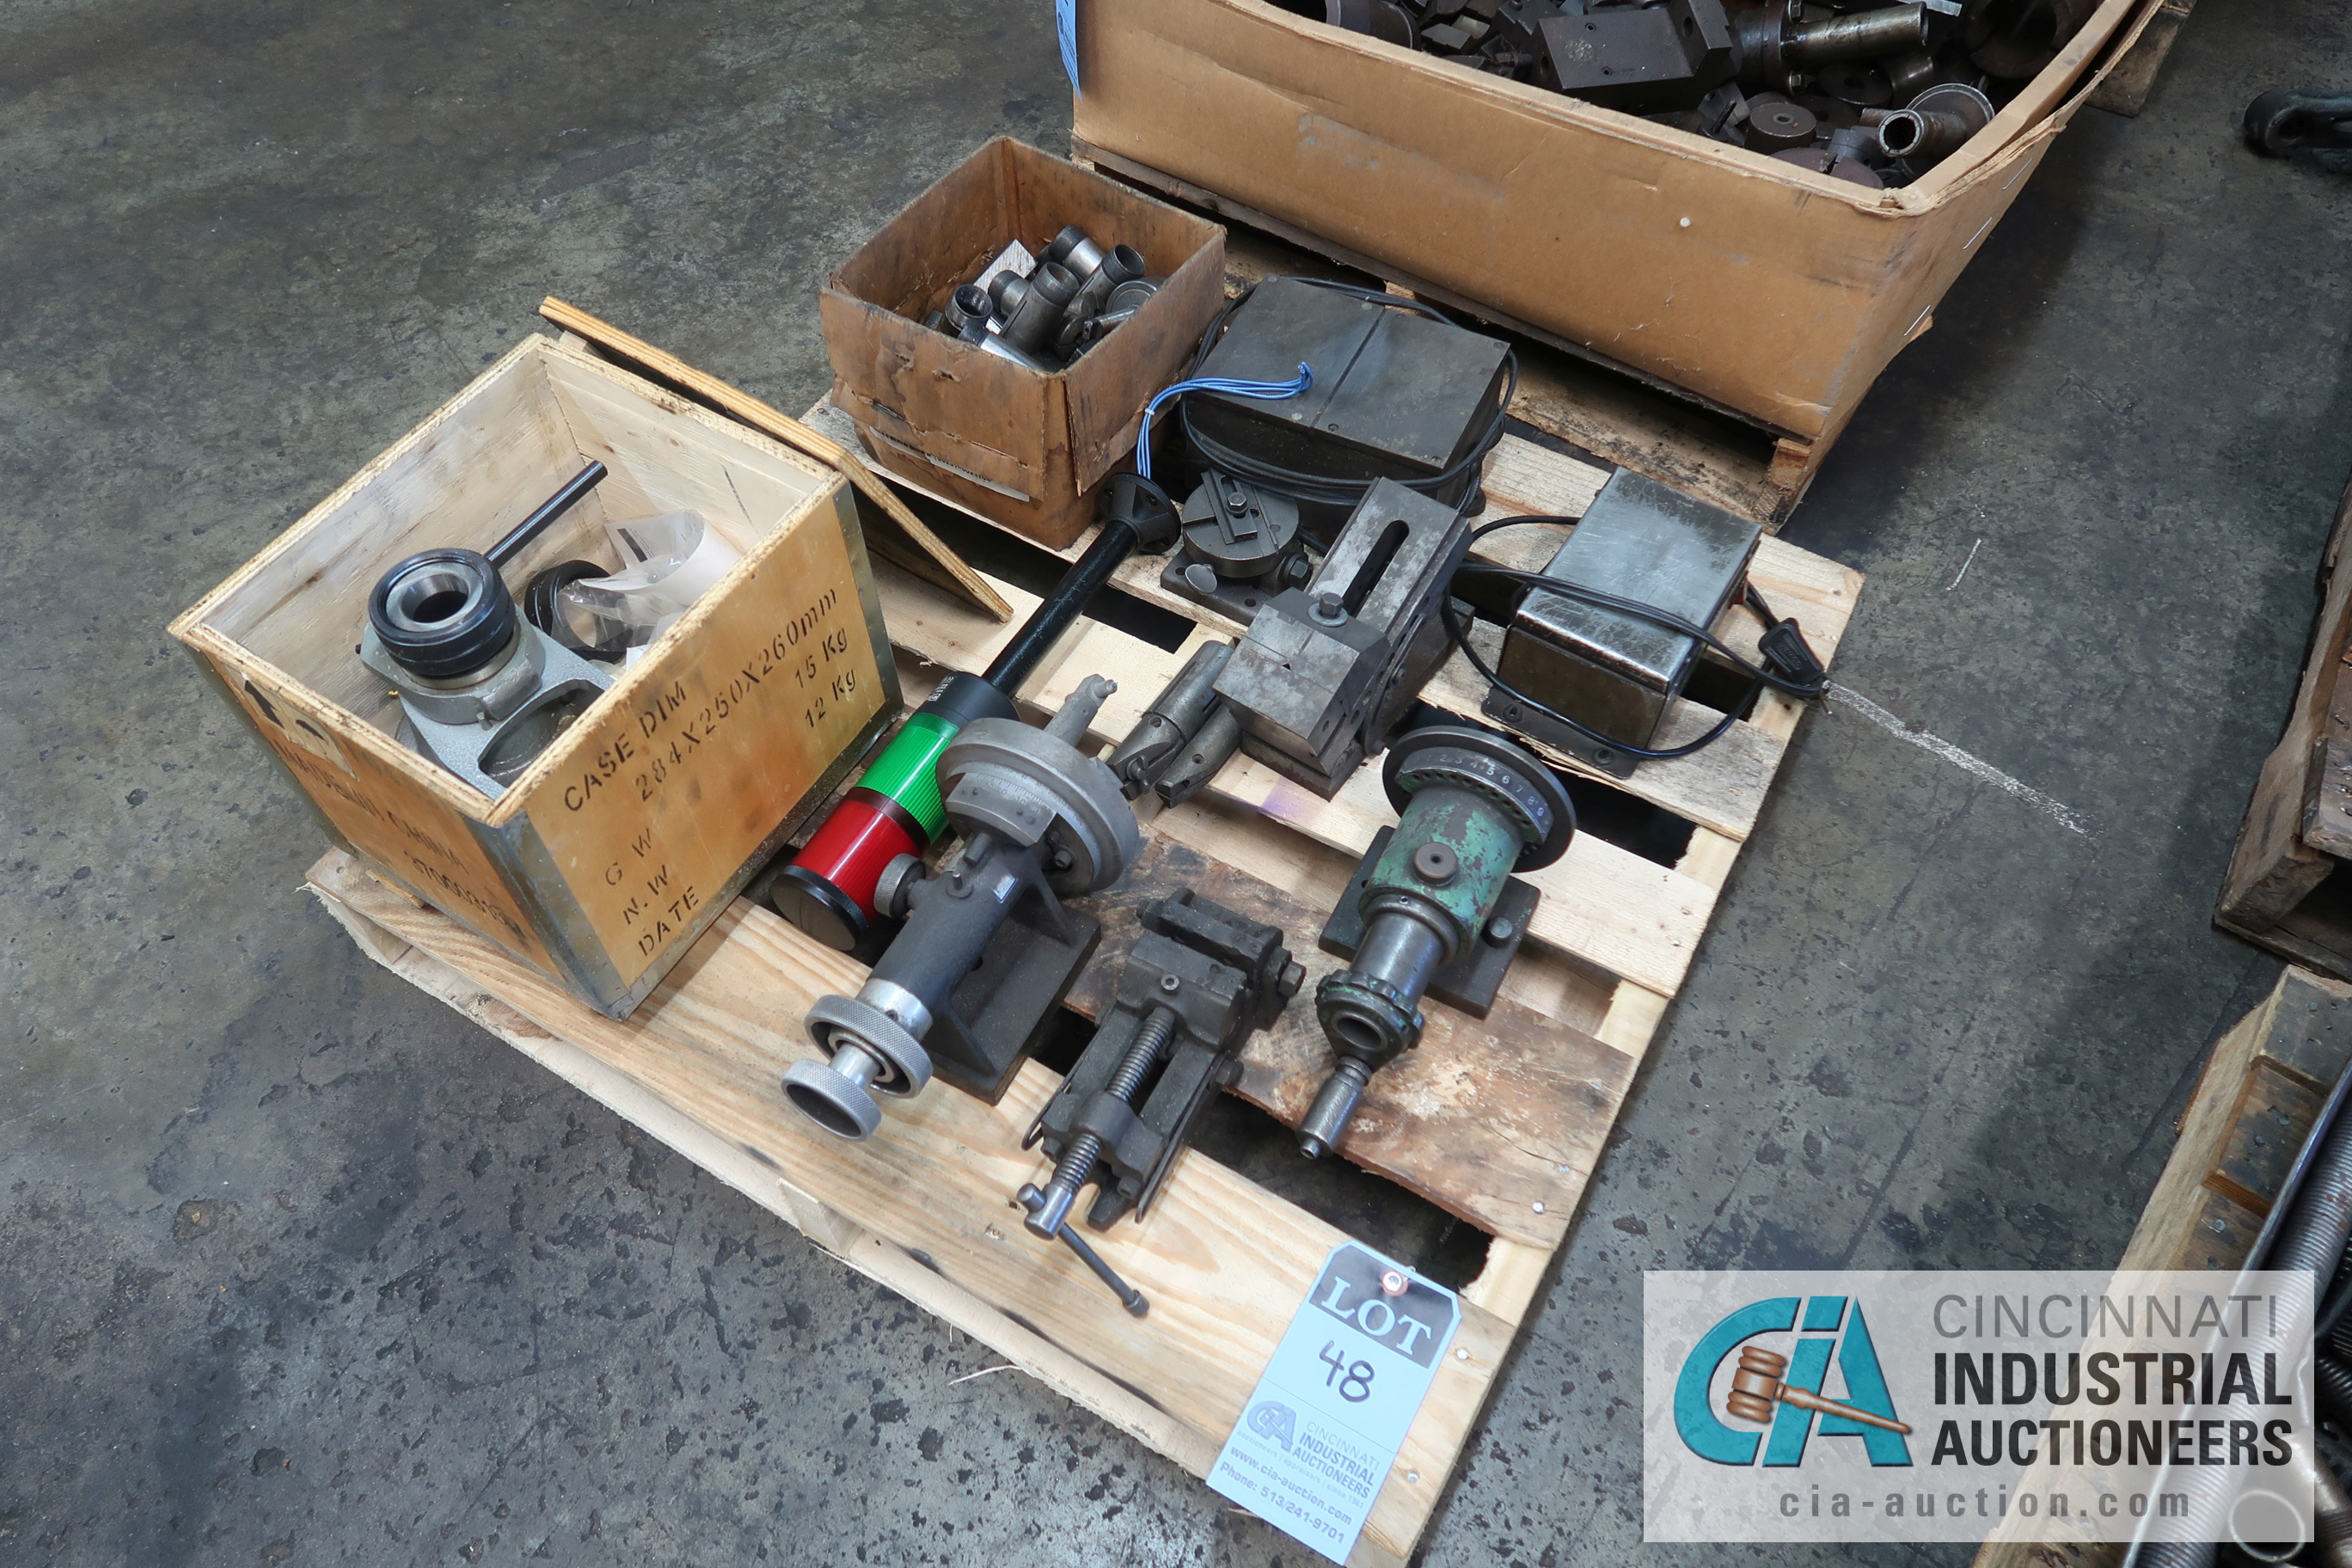 Lot 48 - (LOT) MISCELLANEOUS GRINDING SPIN FIXTURES